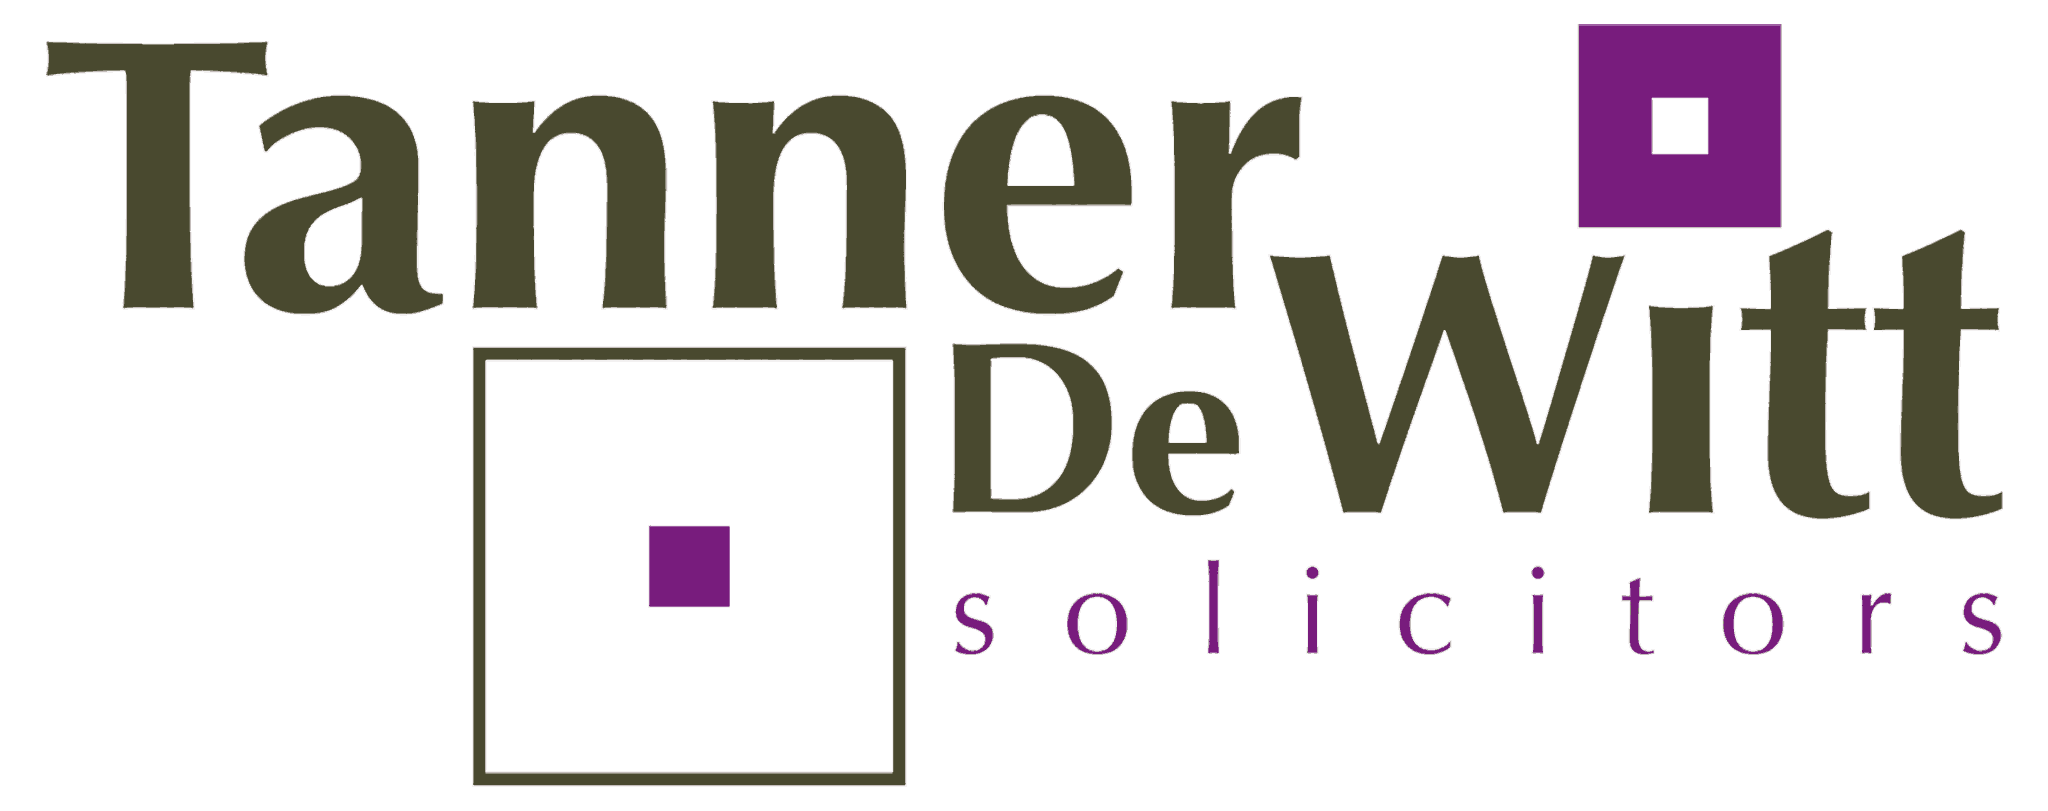 Tanner De Witt Law Firm Hong Kong Logo